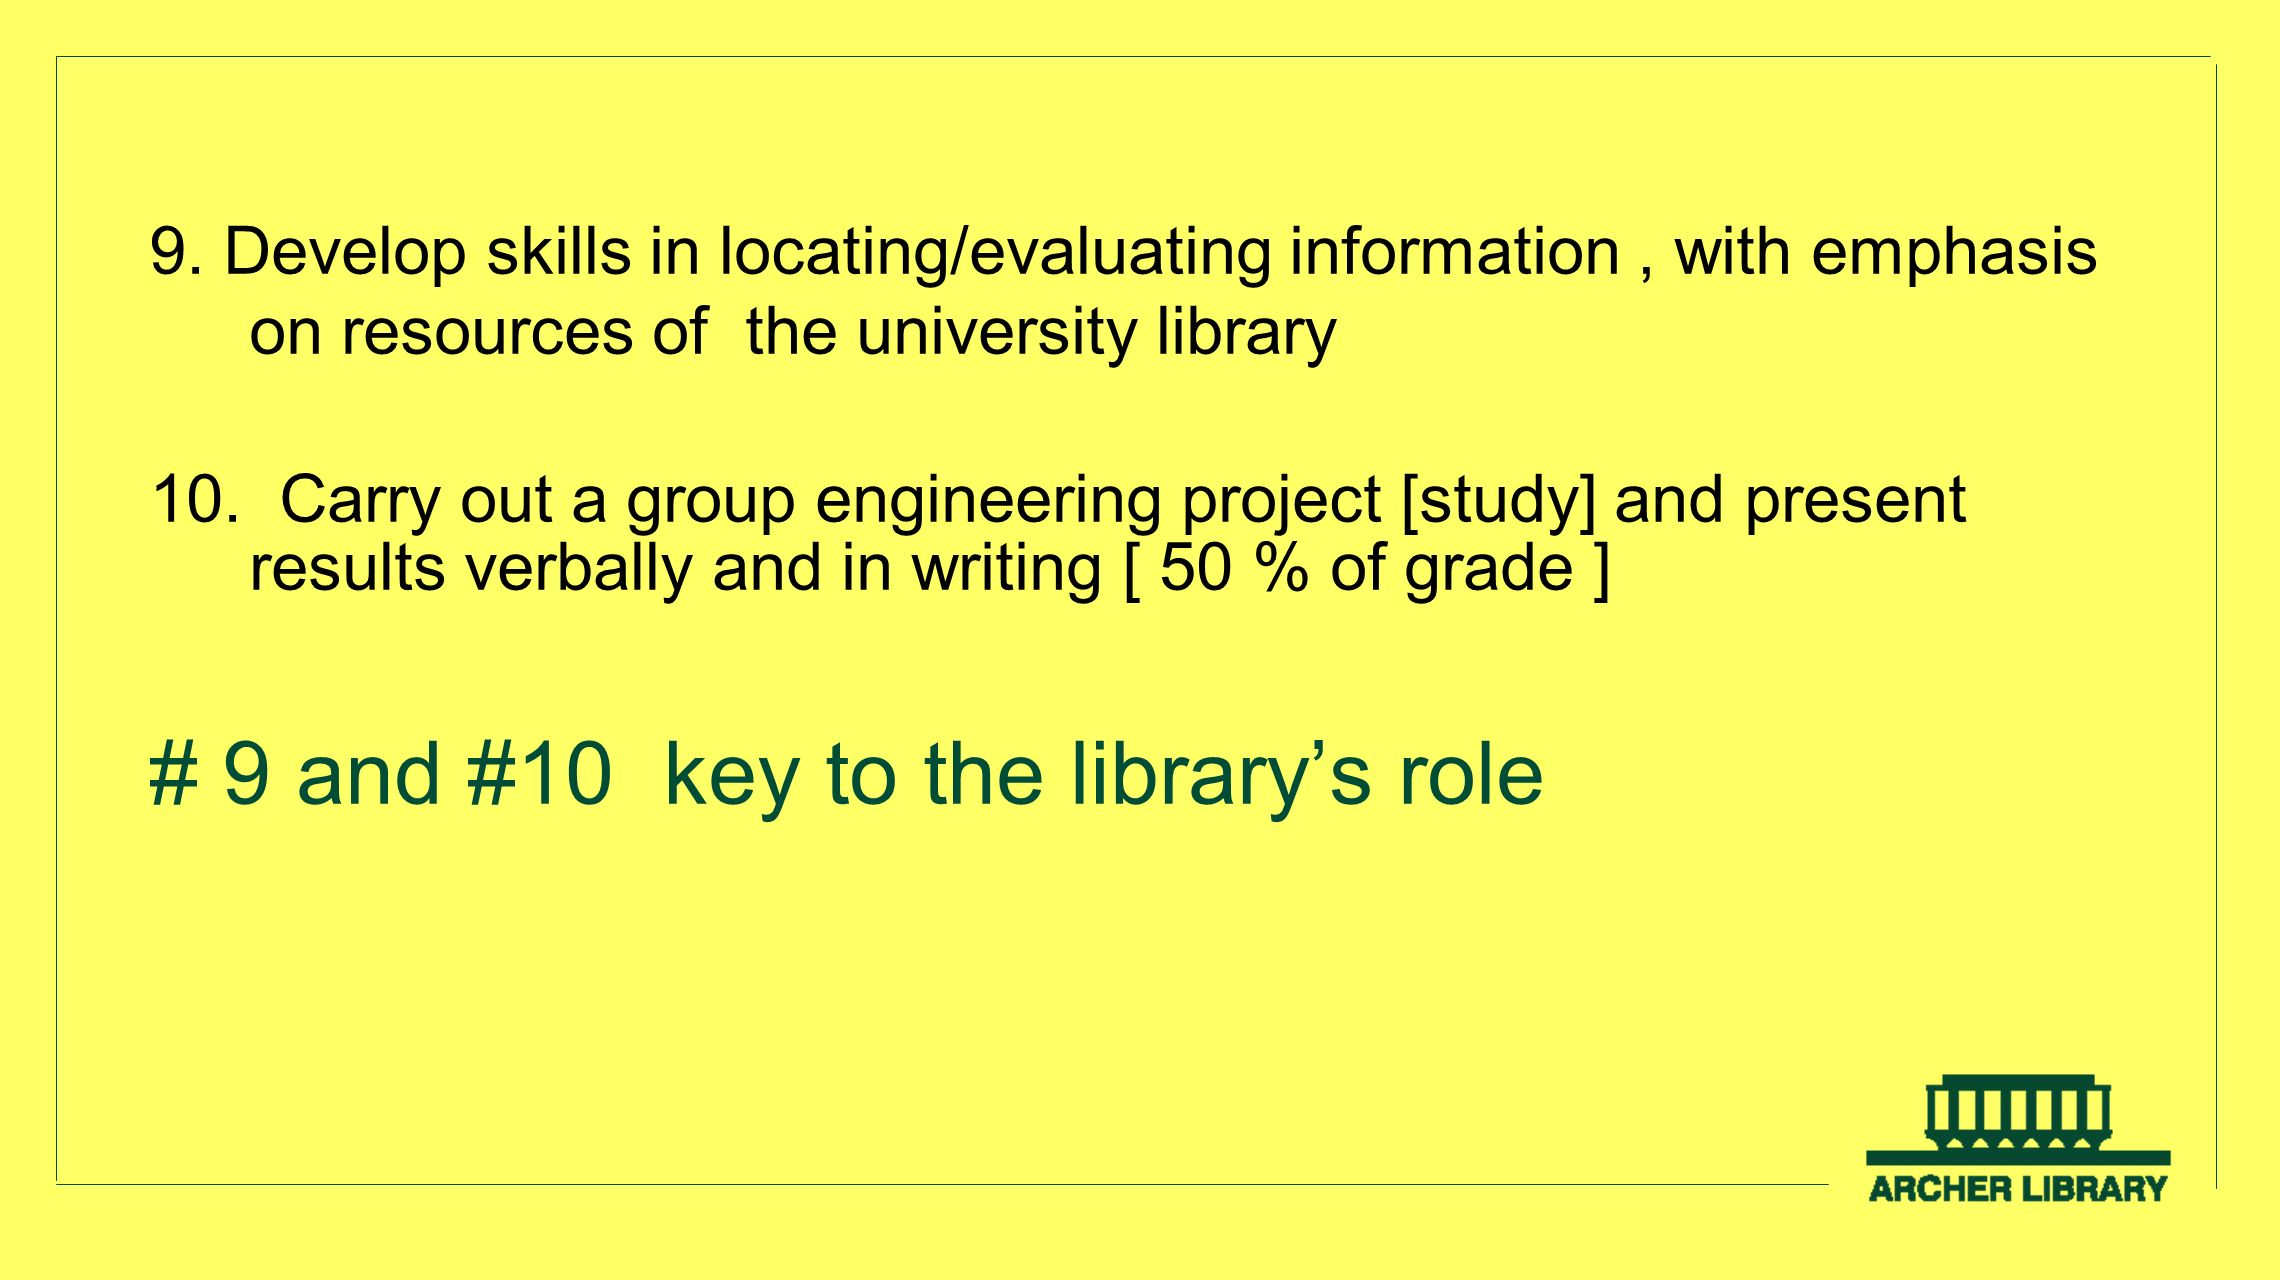 9. Develop skills in locating/evaluating information, with emphasis on resources of the university library 10. Carry out a group engineering project [